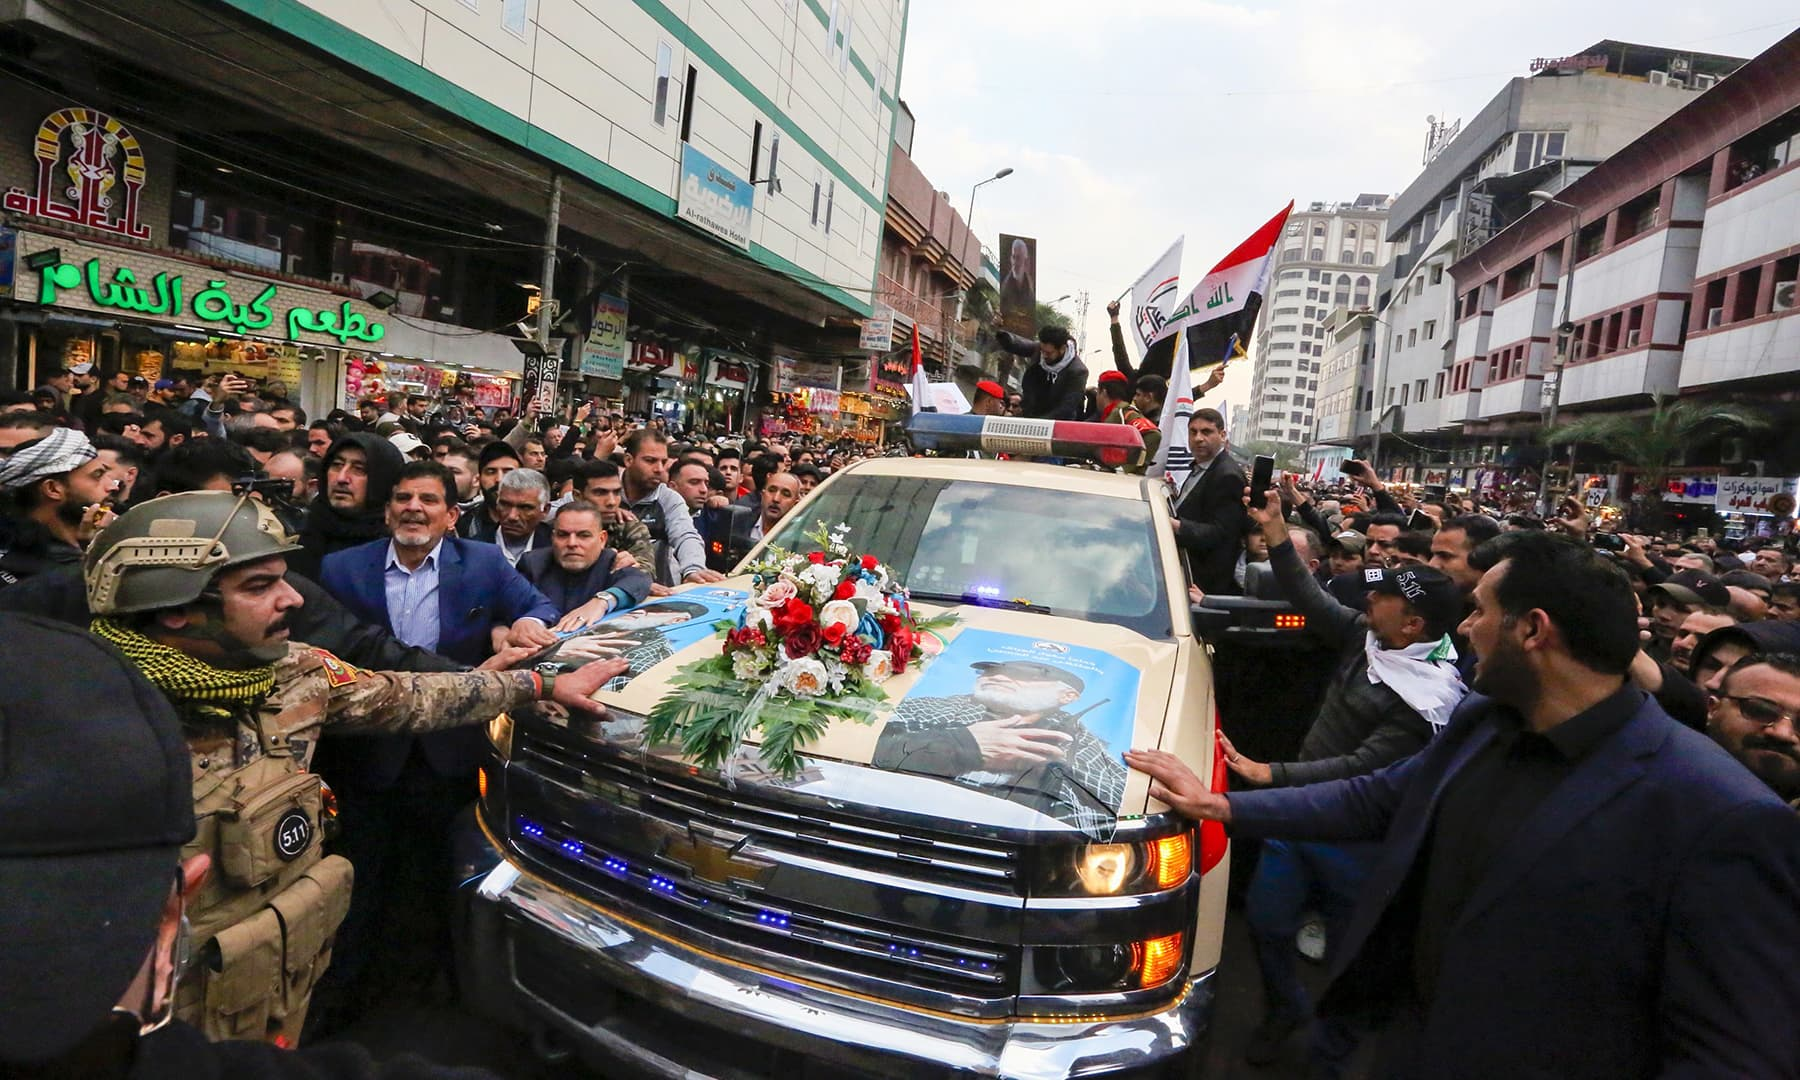 Mourners surround a car carrying the coffin of Iranian military commander Qasem Soleimani, killed alongside Iraqi paramilitary chief Abu Mahdi al-Muhandis in a US air strike, during a funeral procession in Kadhimiya, on January 4. — AFP